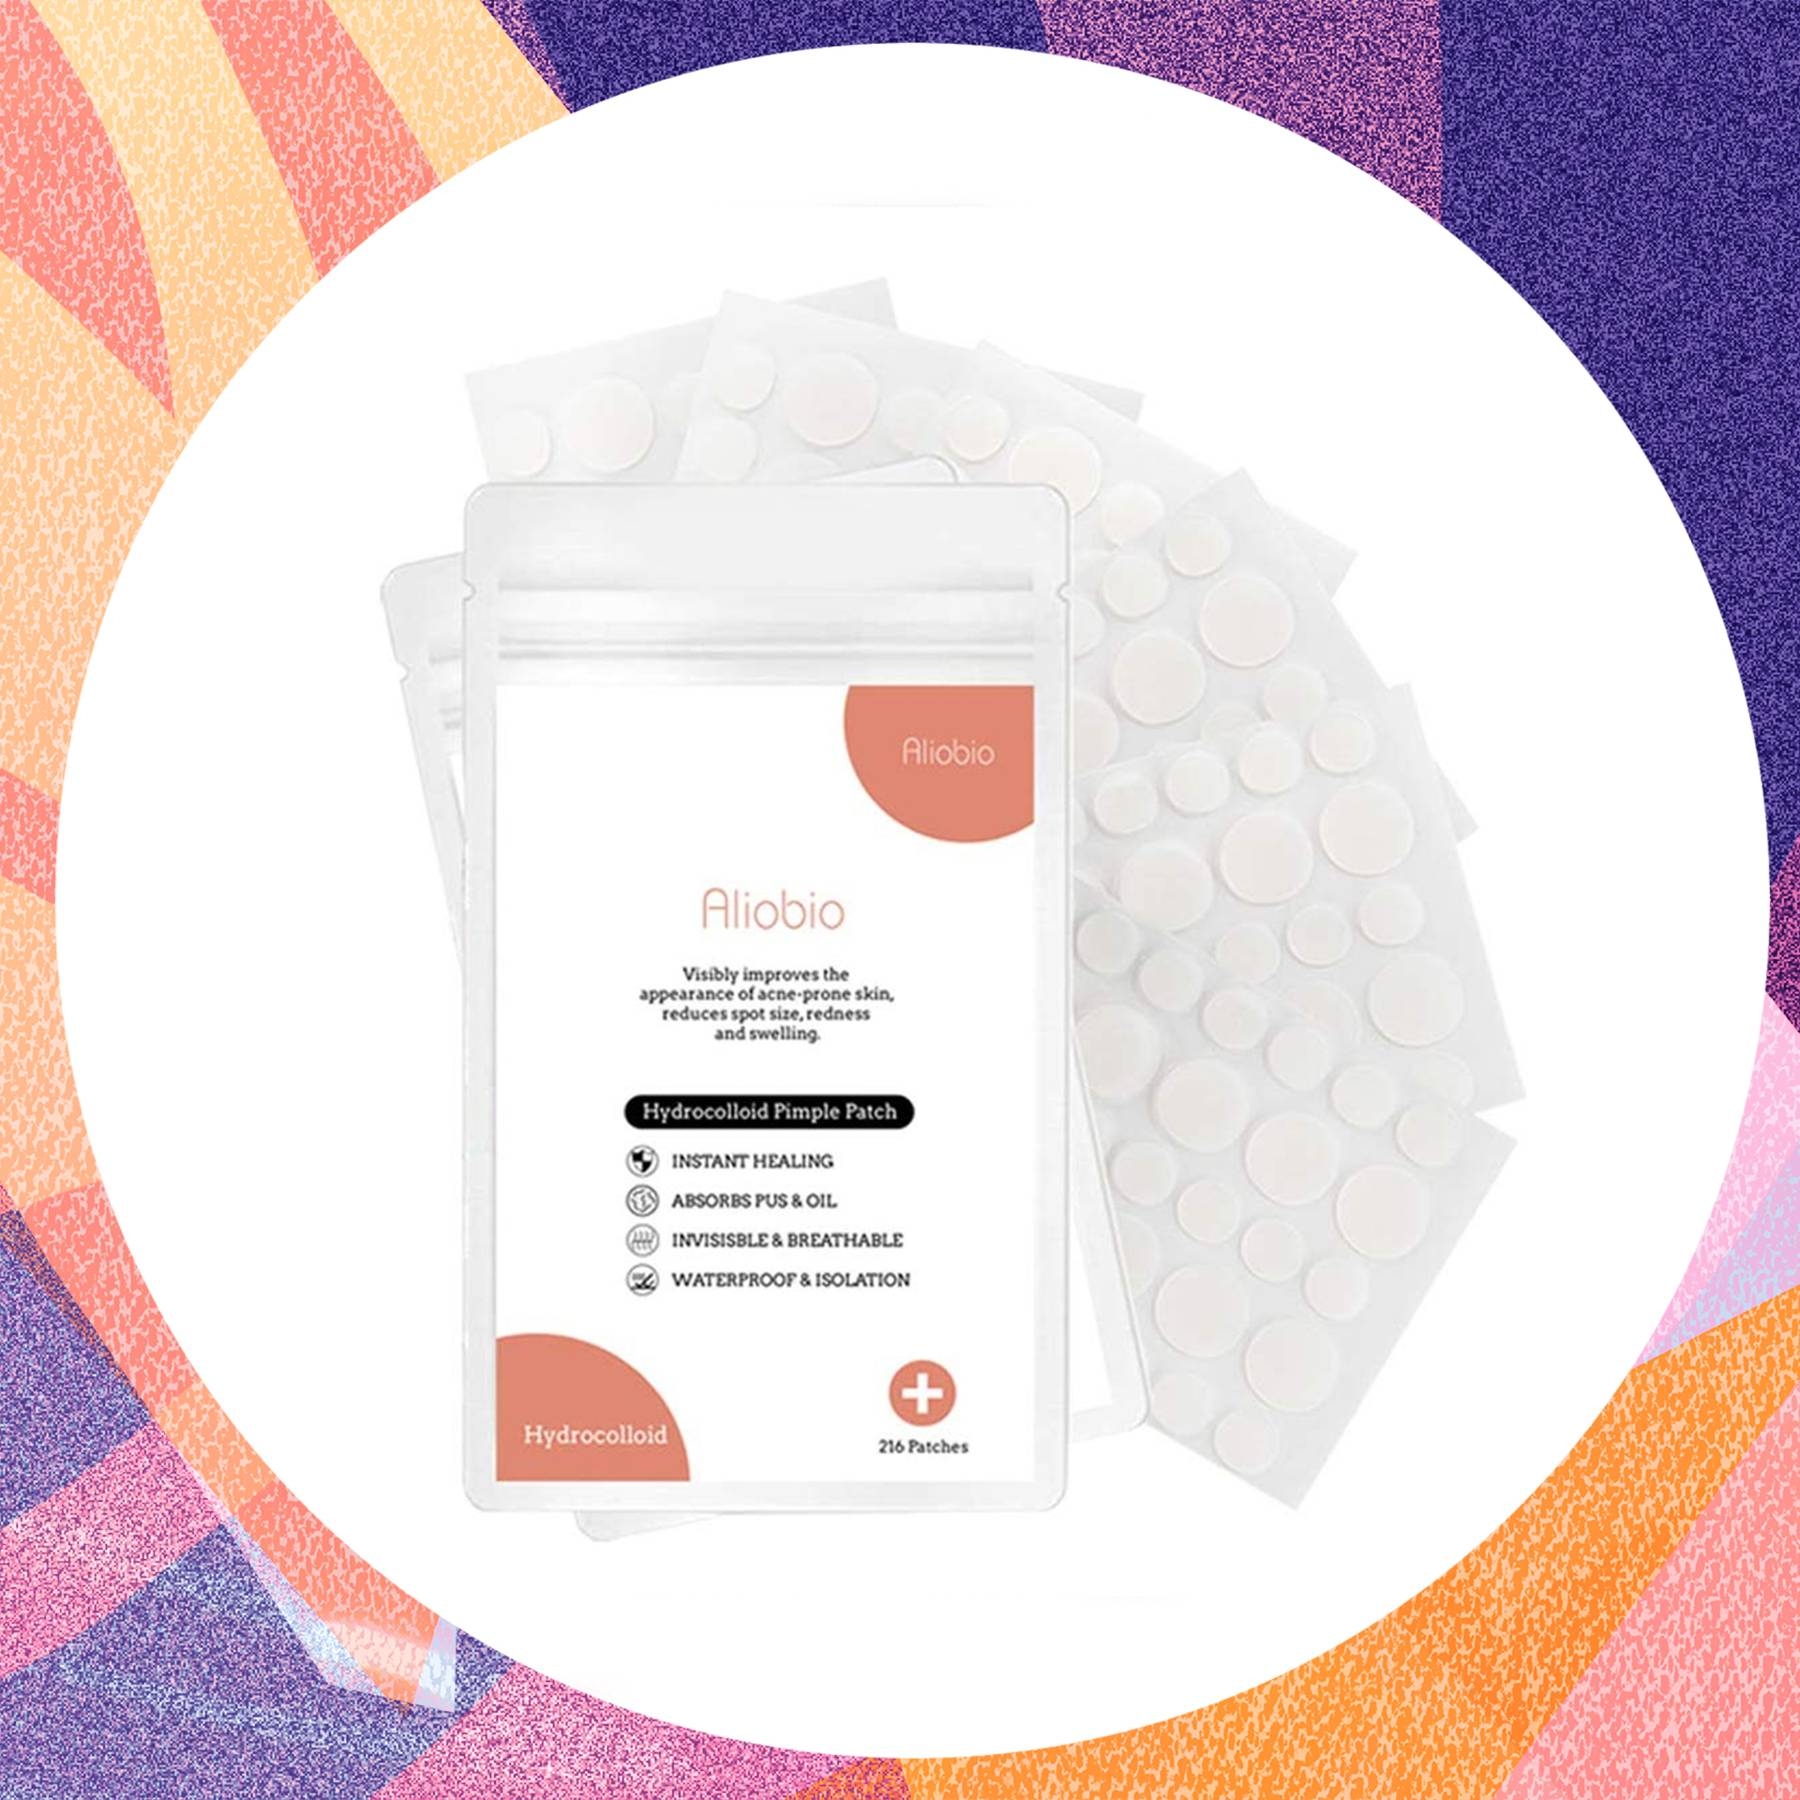 These acne patches have so many 5-star reviews on Amazon for clearing spots overnight